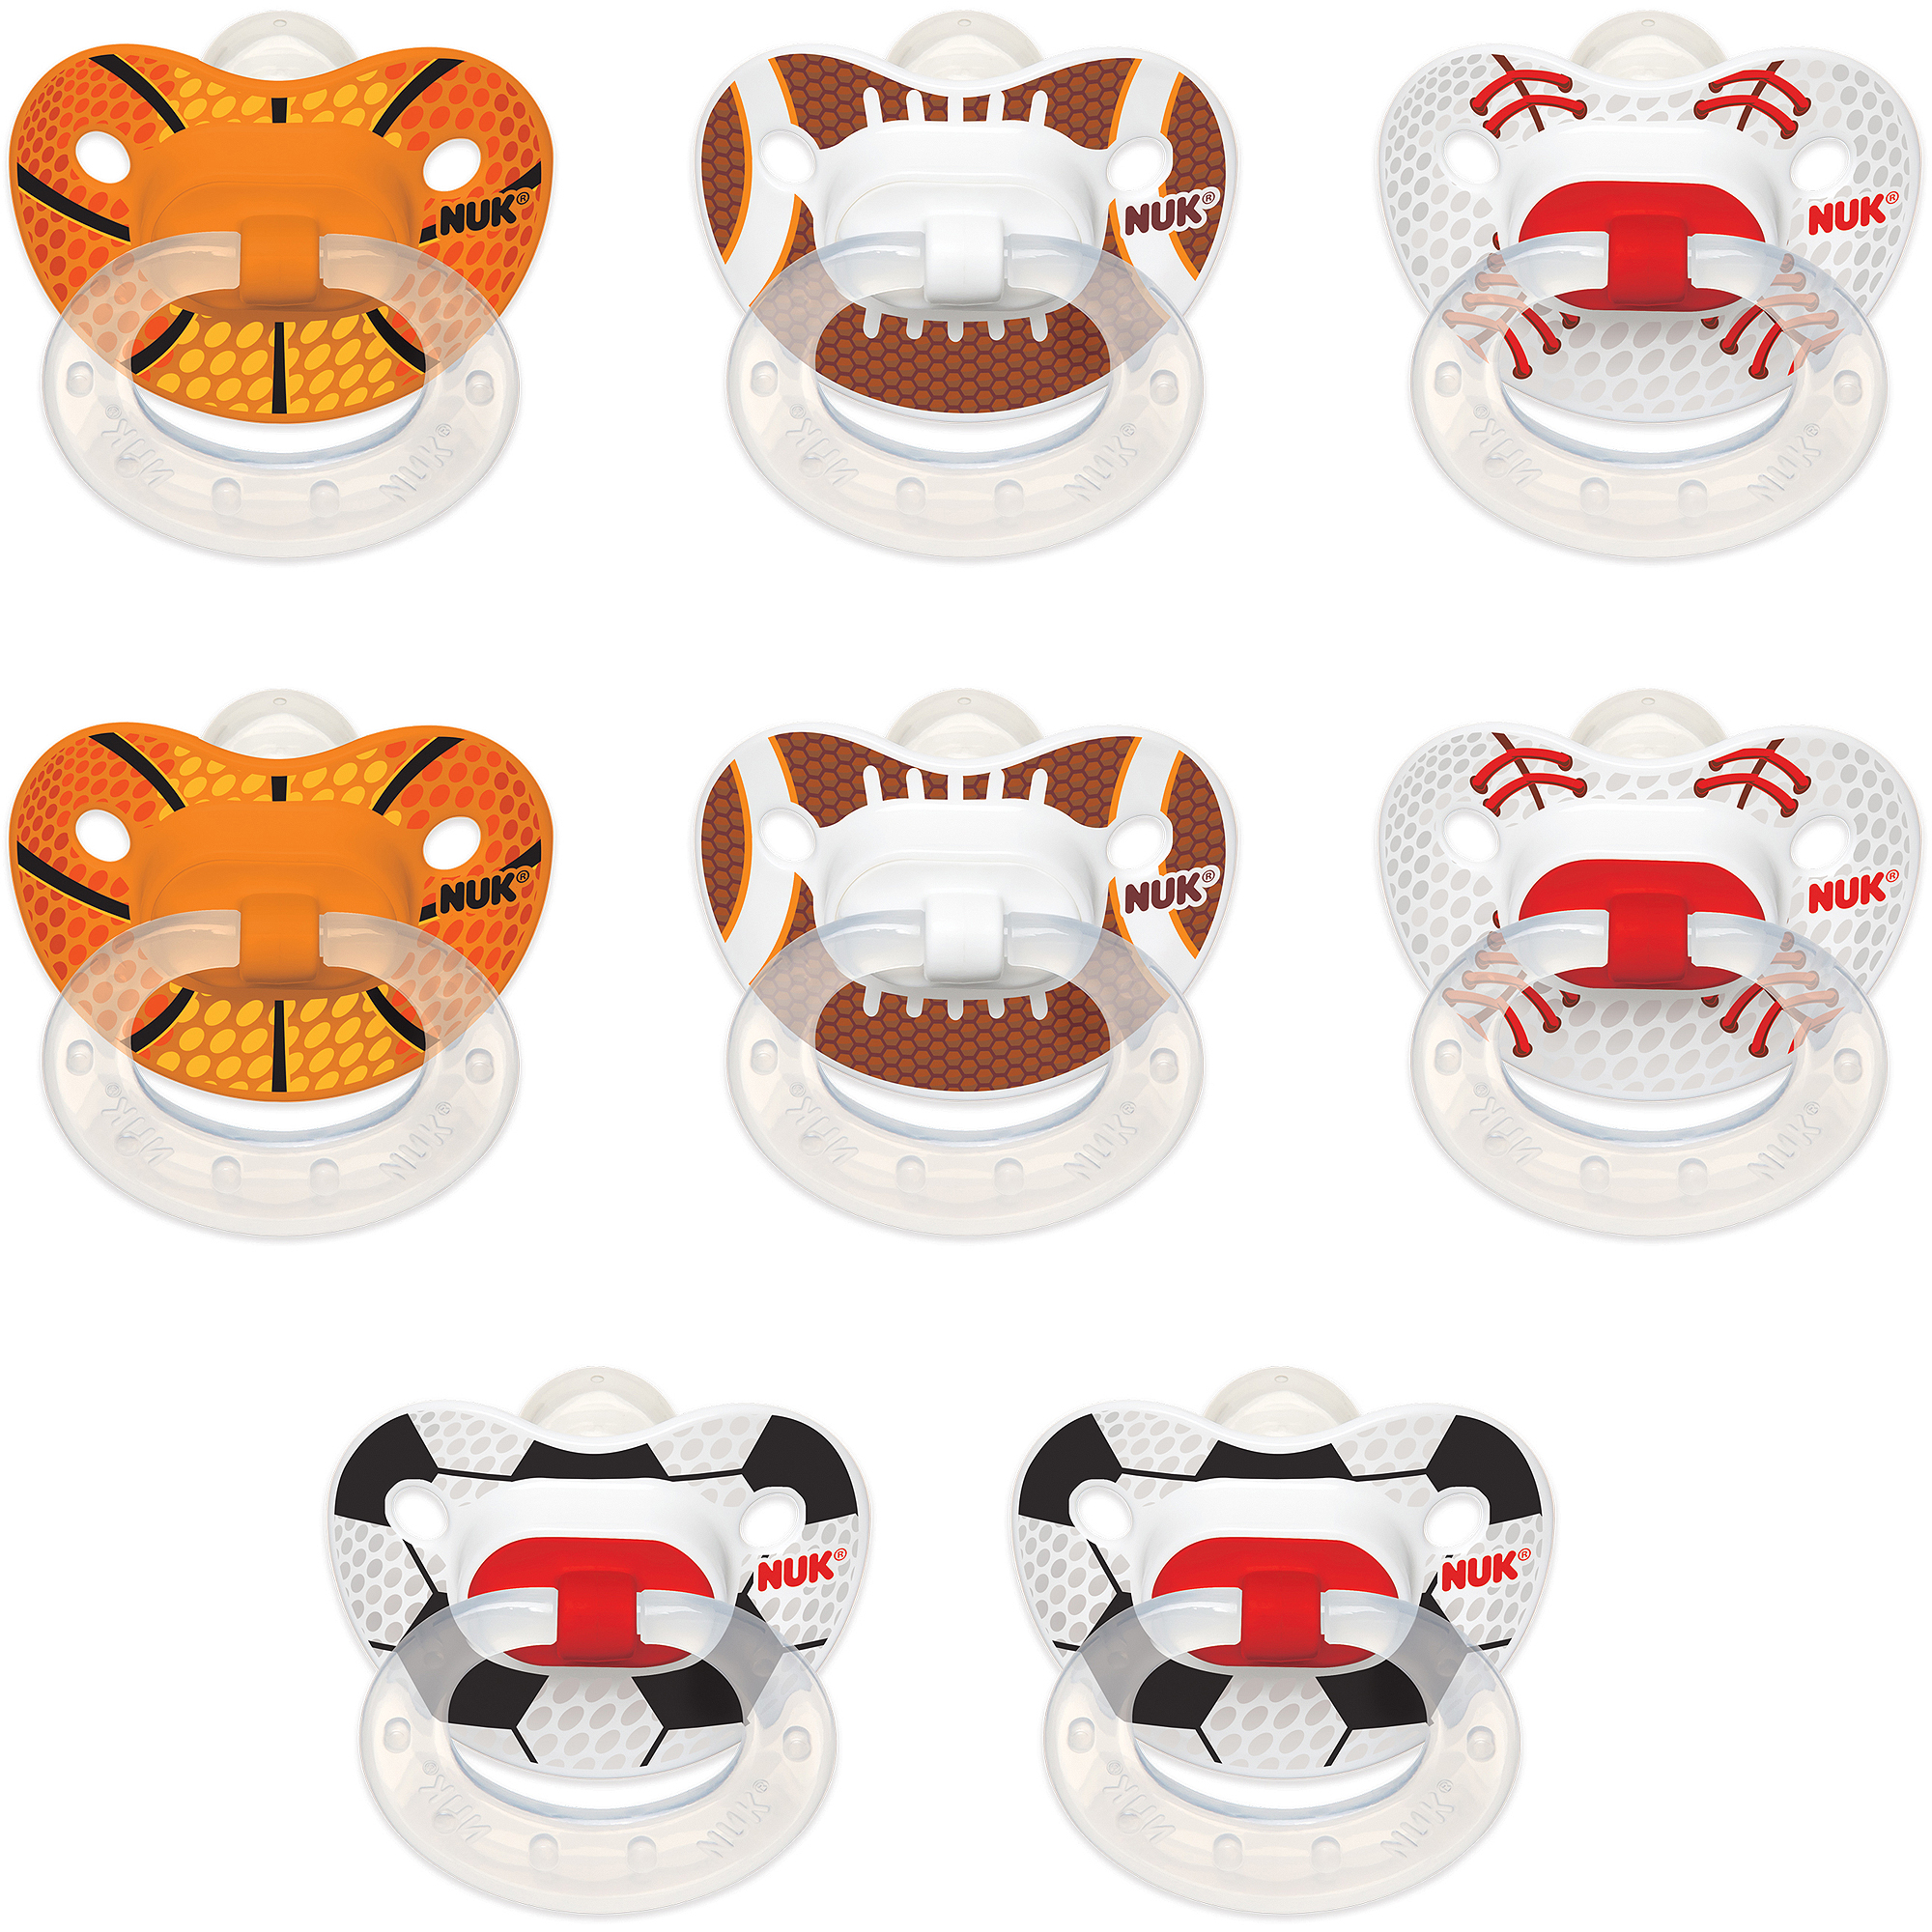 NUK - Classic Silicone Pacifiers (Sizes 1 & 2), 8-Pack  Bundle, Sports